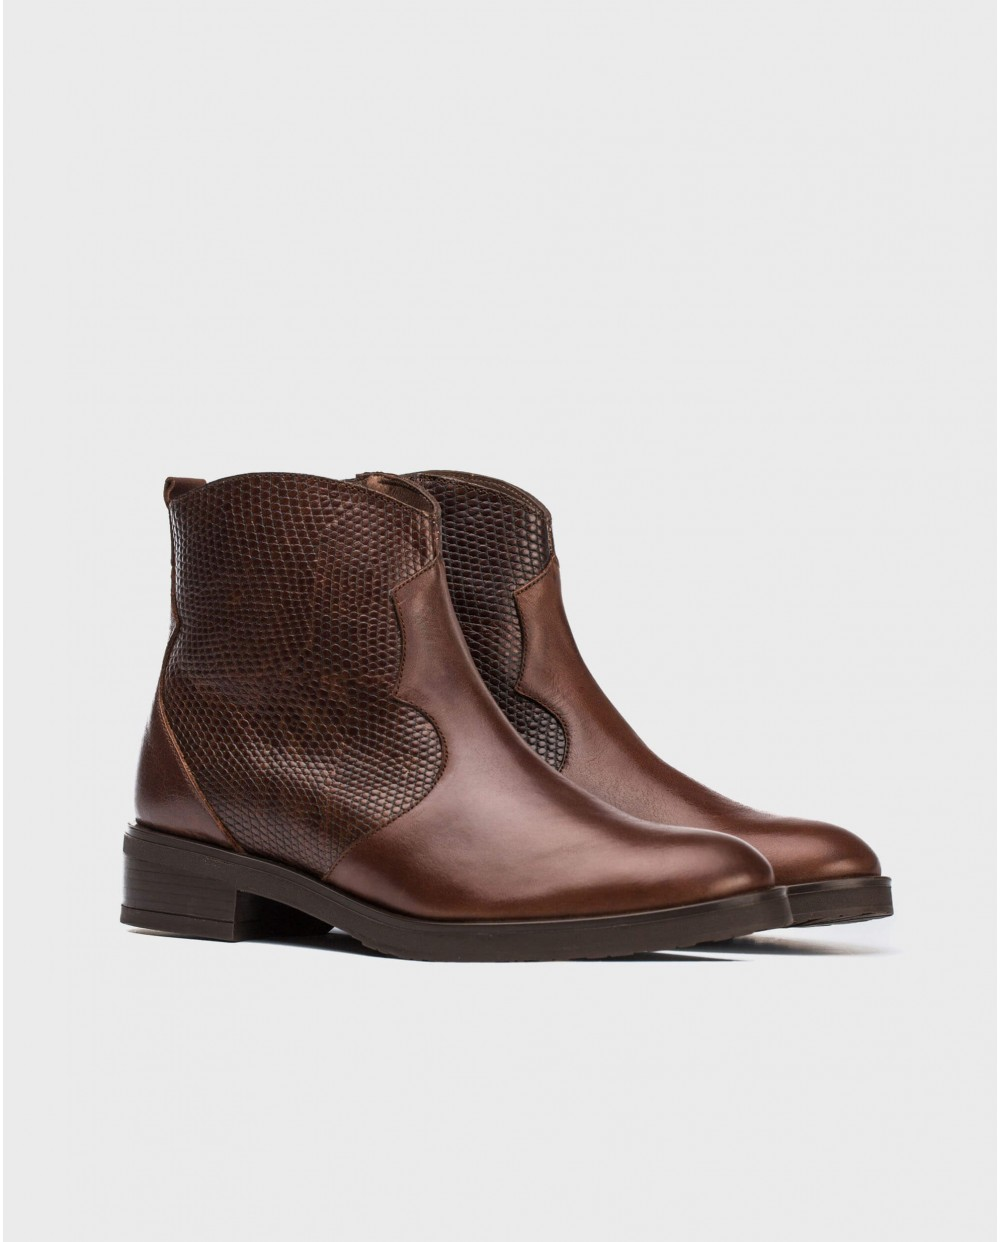 Wonders-Ankle Boots-Leather ankle boot with V cut out